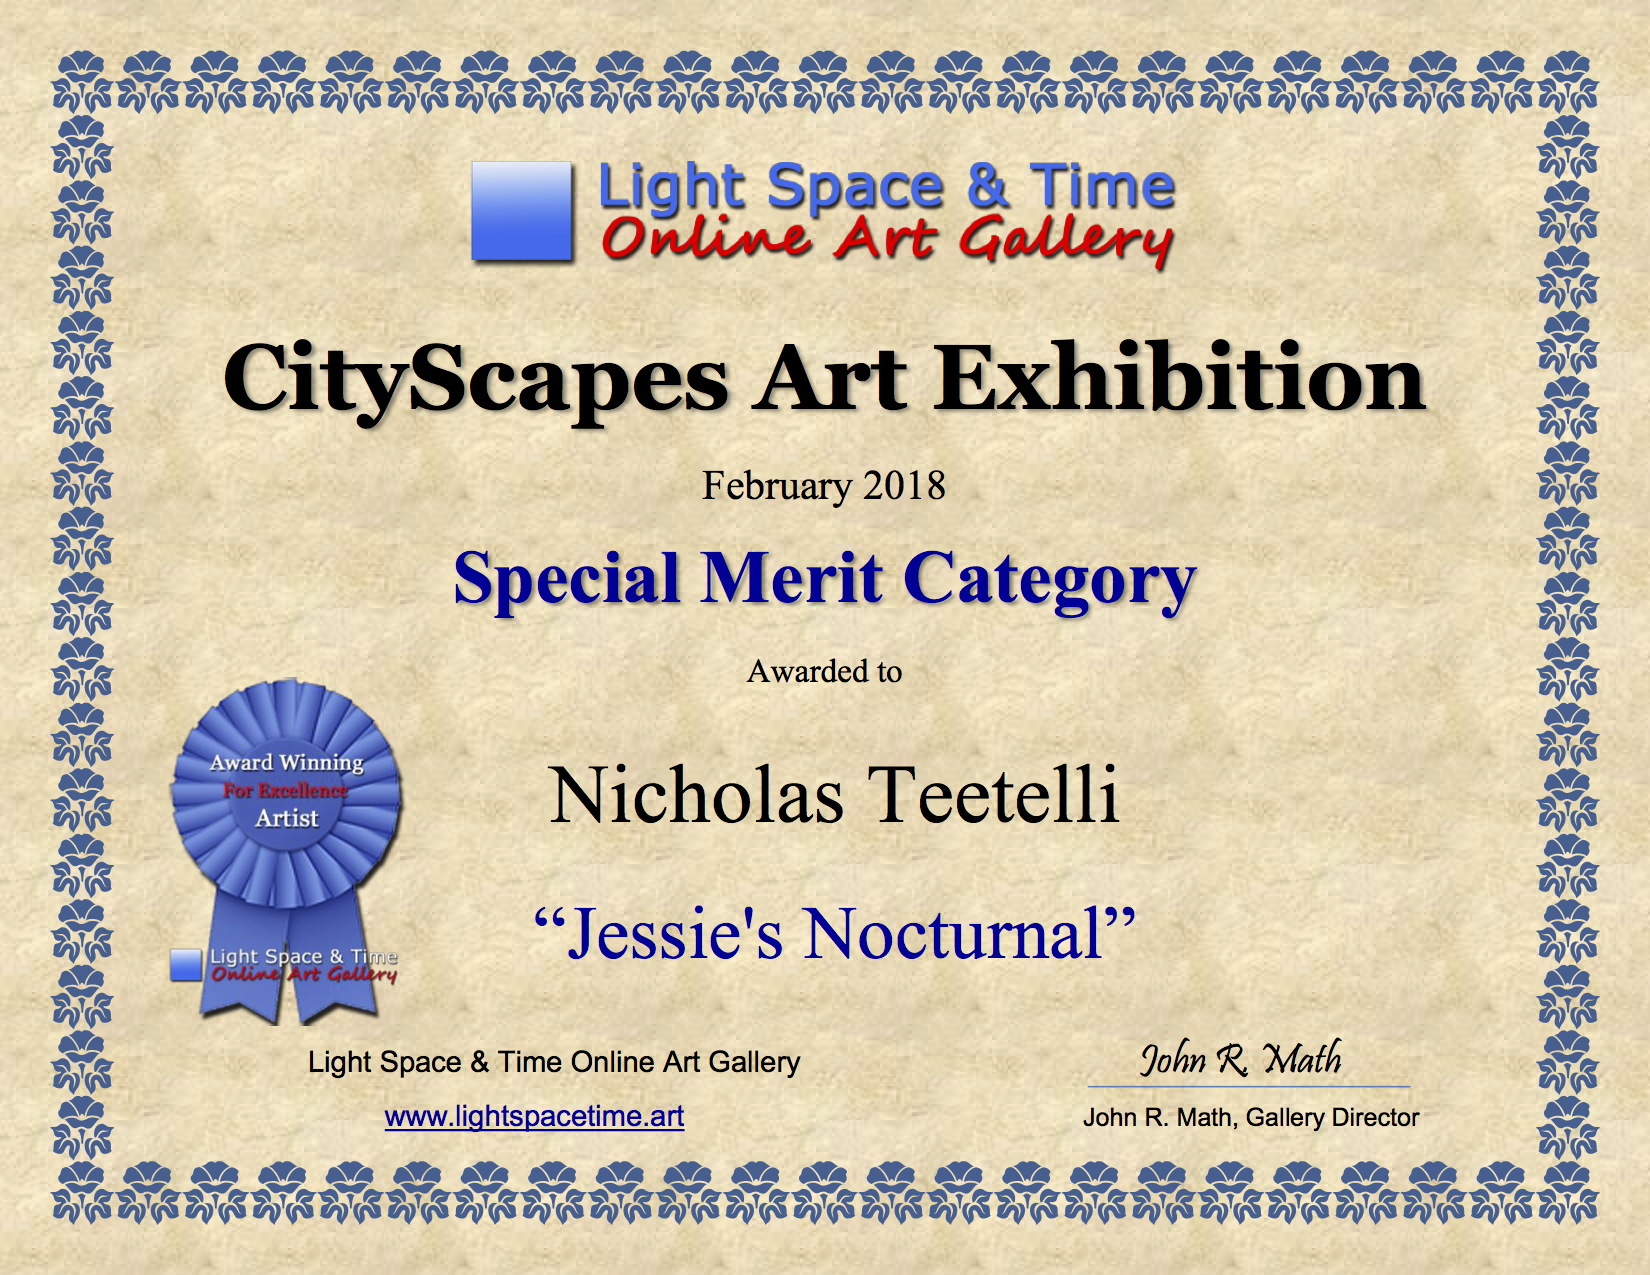 2018-02 LS&T SM - Cityscapes Art Exhibition AWARD Jessies Nocturnal.png